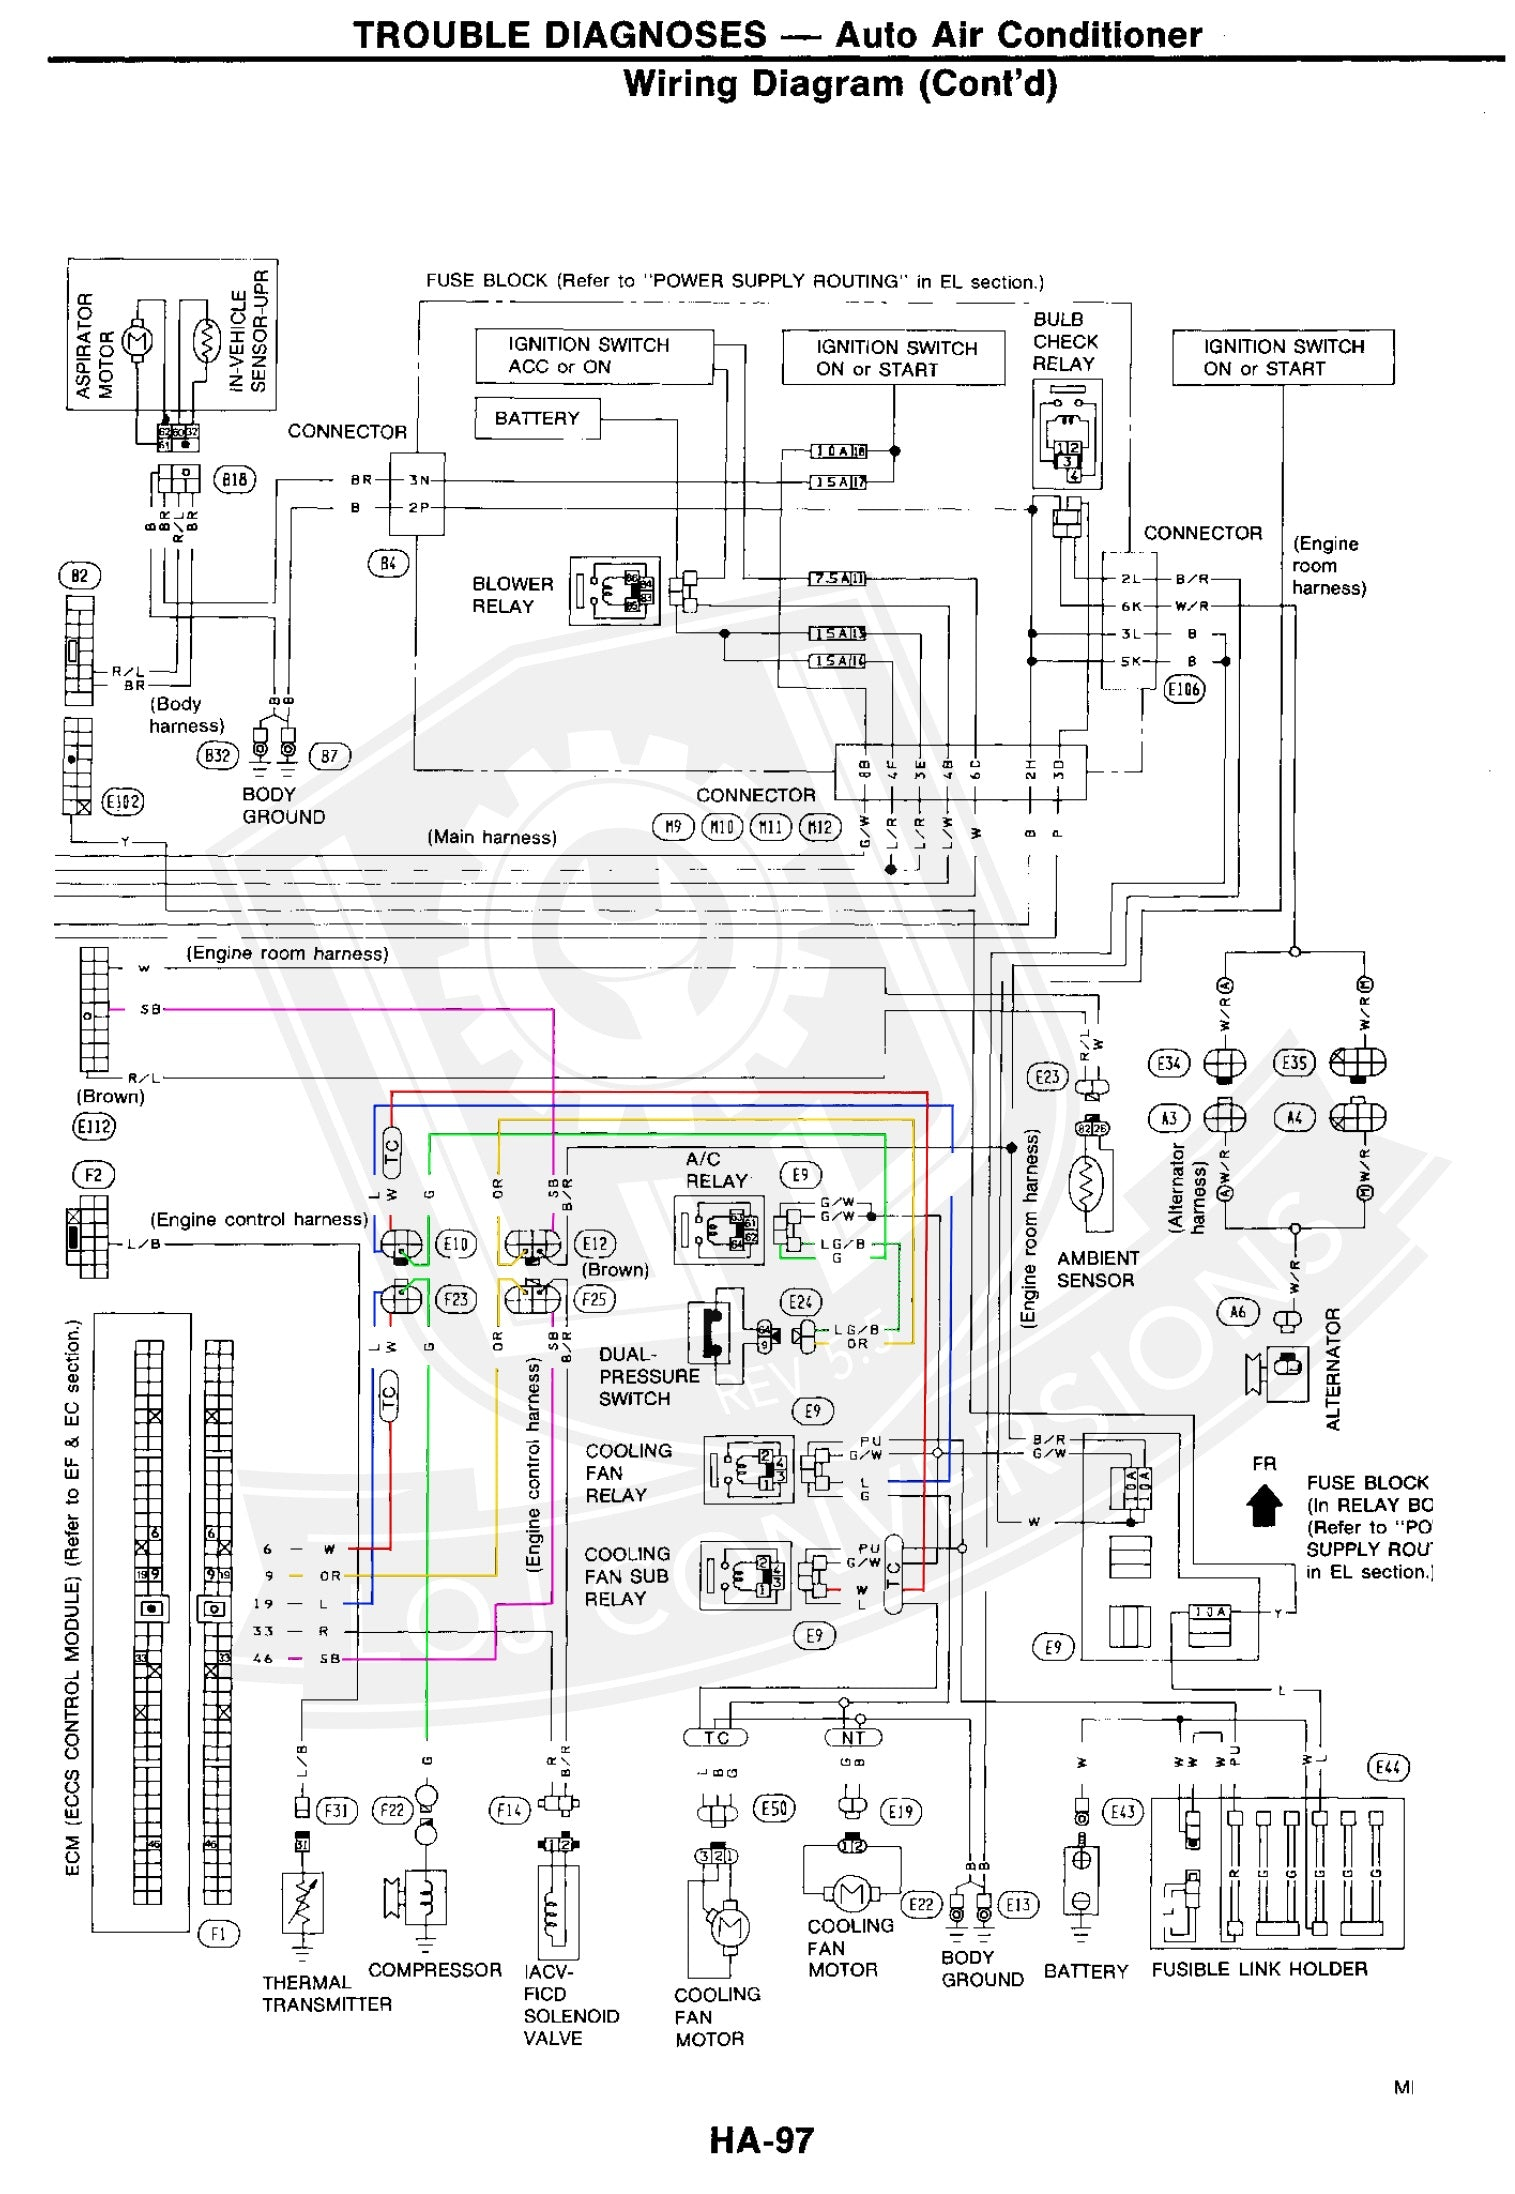 Z32 wiring diagram 300zx wiring diagram wiring diagrams wiring the ac in a 300zx engine conversion loj conversions 300zx wiring diagram engine z32 300zx cheapraybanclubmaster Choice Image